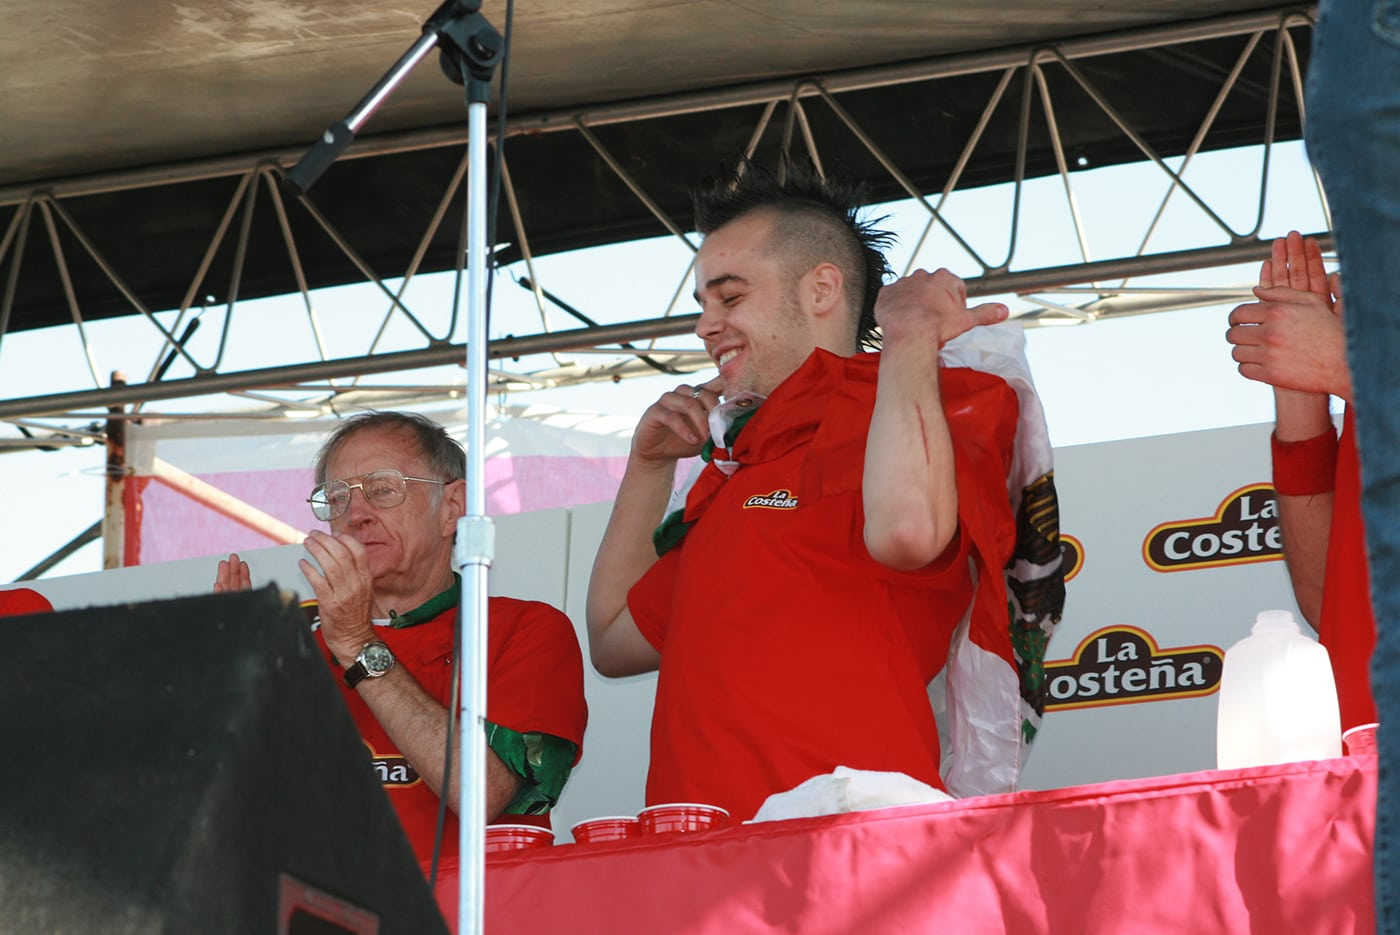 """Pat Bertoletti wins the La Costeña """"Feel the Heat"""" Jalapeño Eating Challenge - jalapeno eating contest in Chicago."""